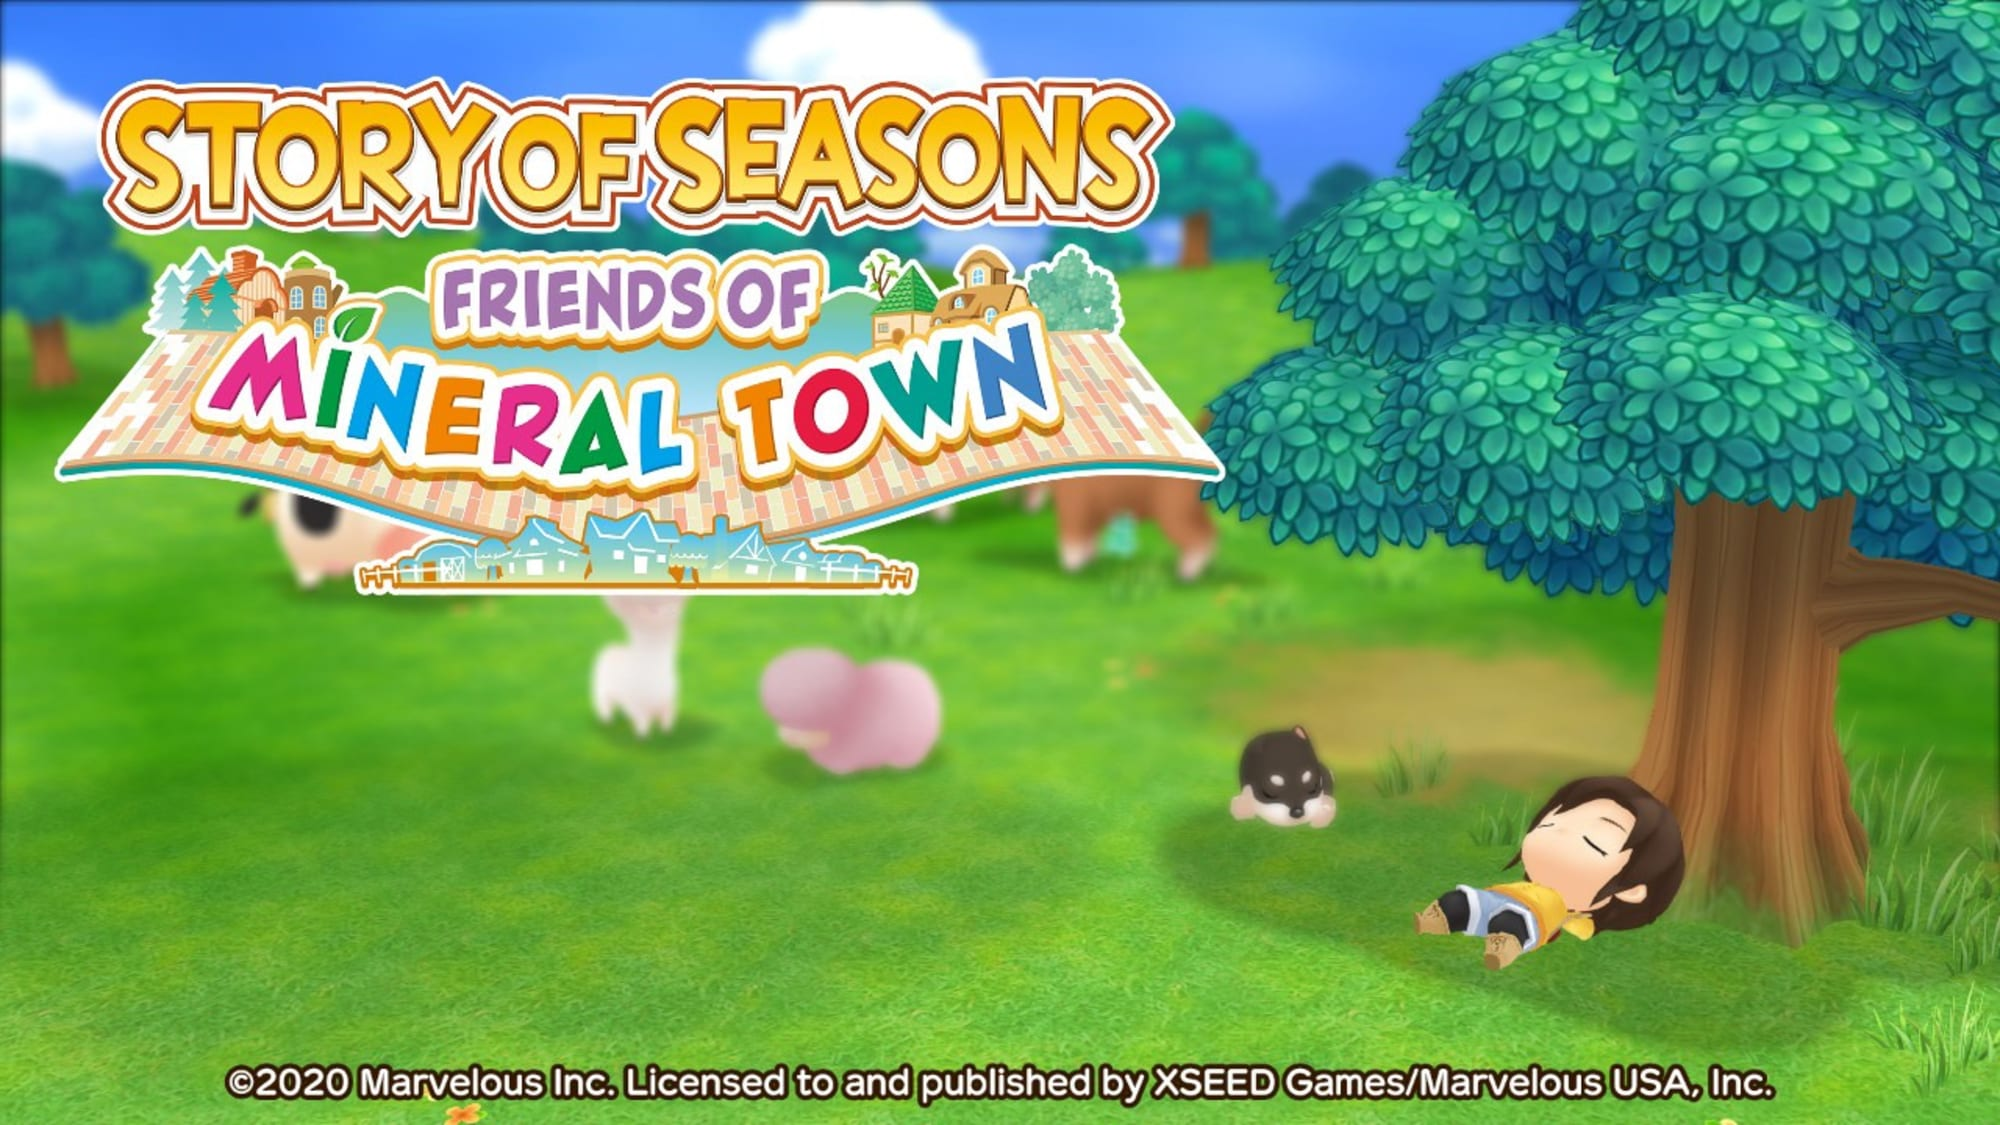 Story of Seasons: Friends of Mineral Town first impressions